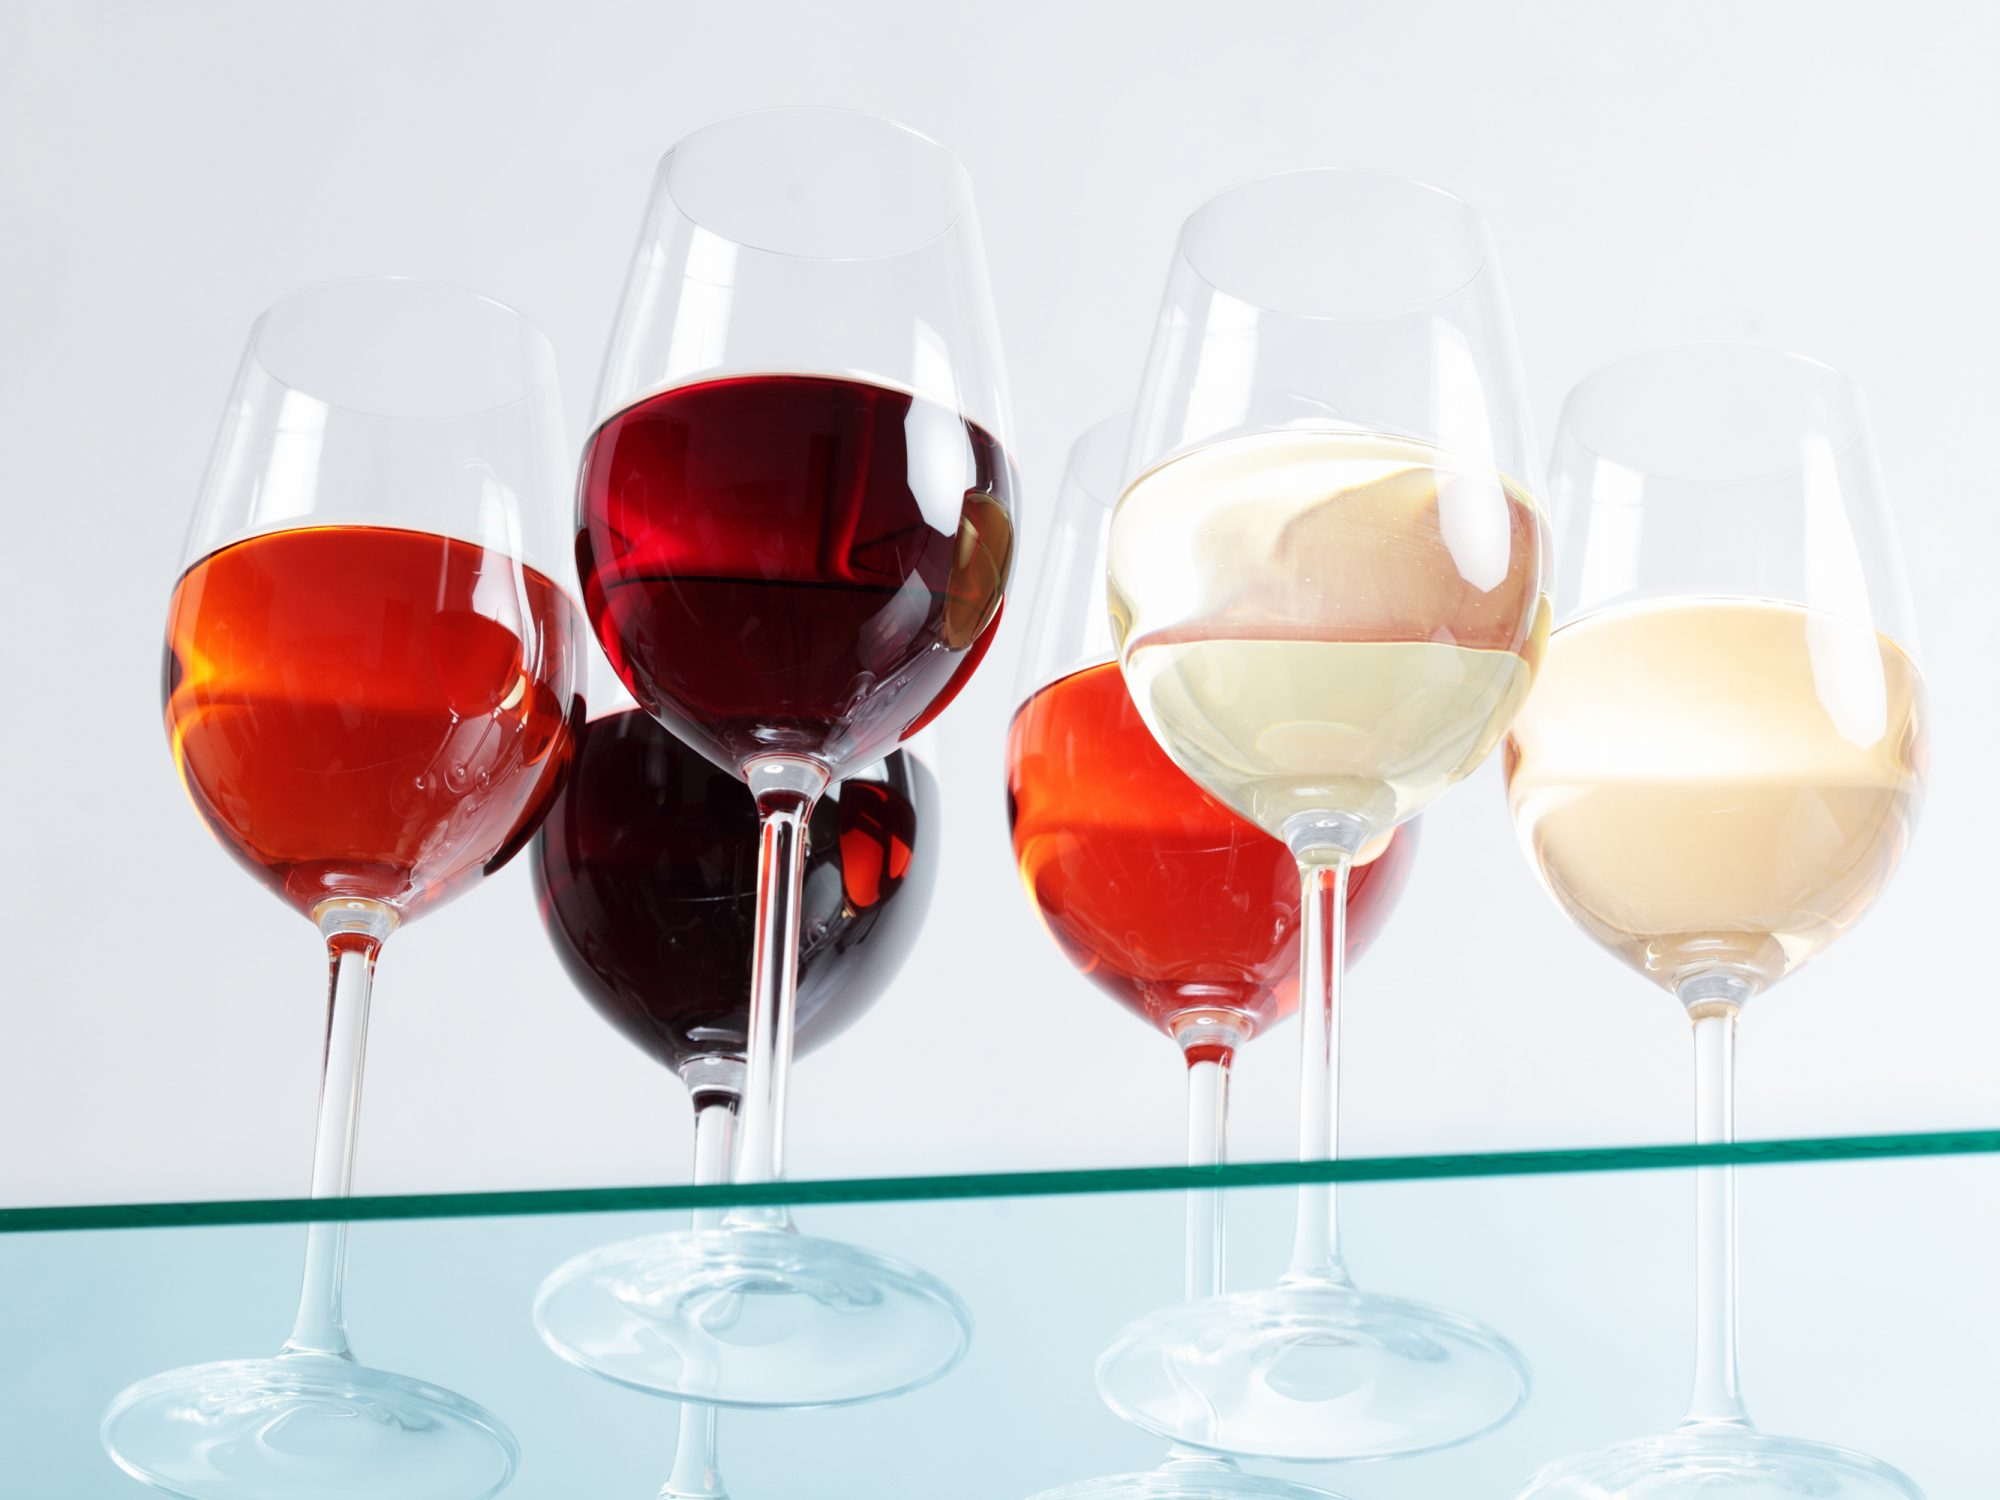 wine glasses seen from under the bar